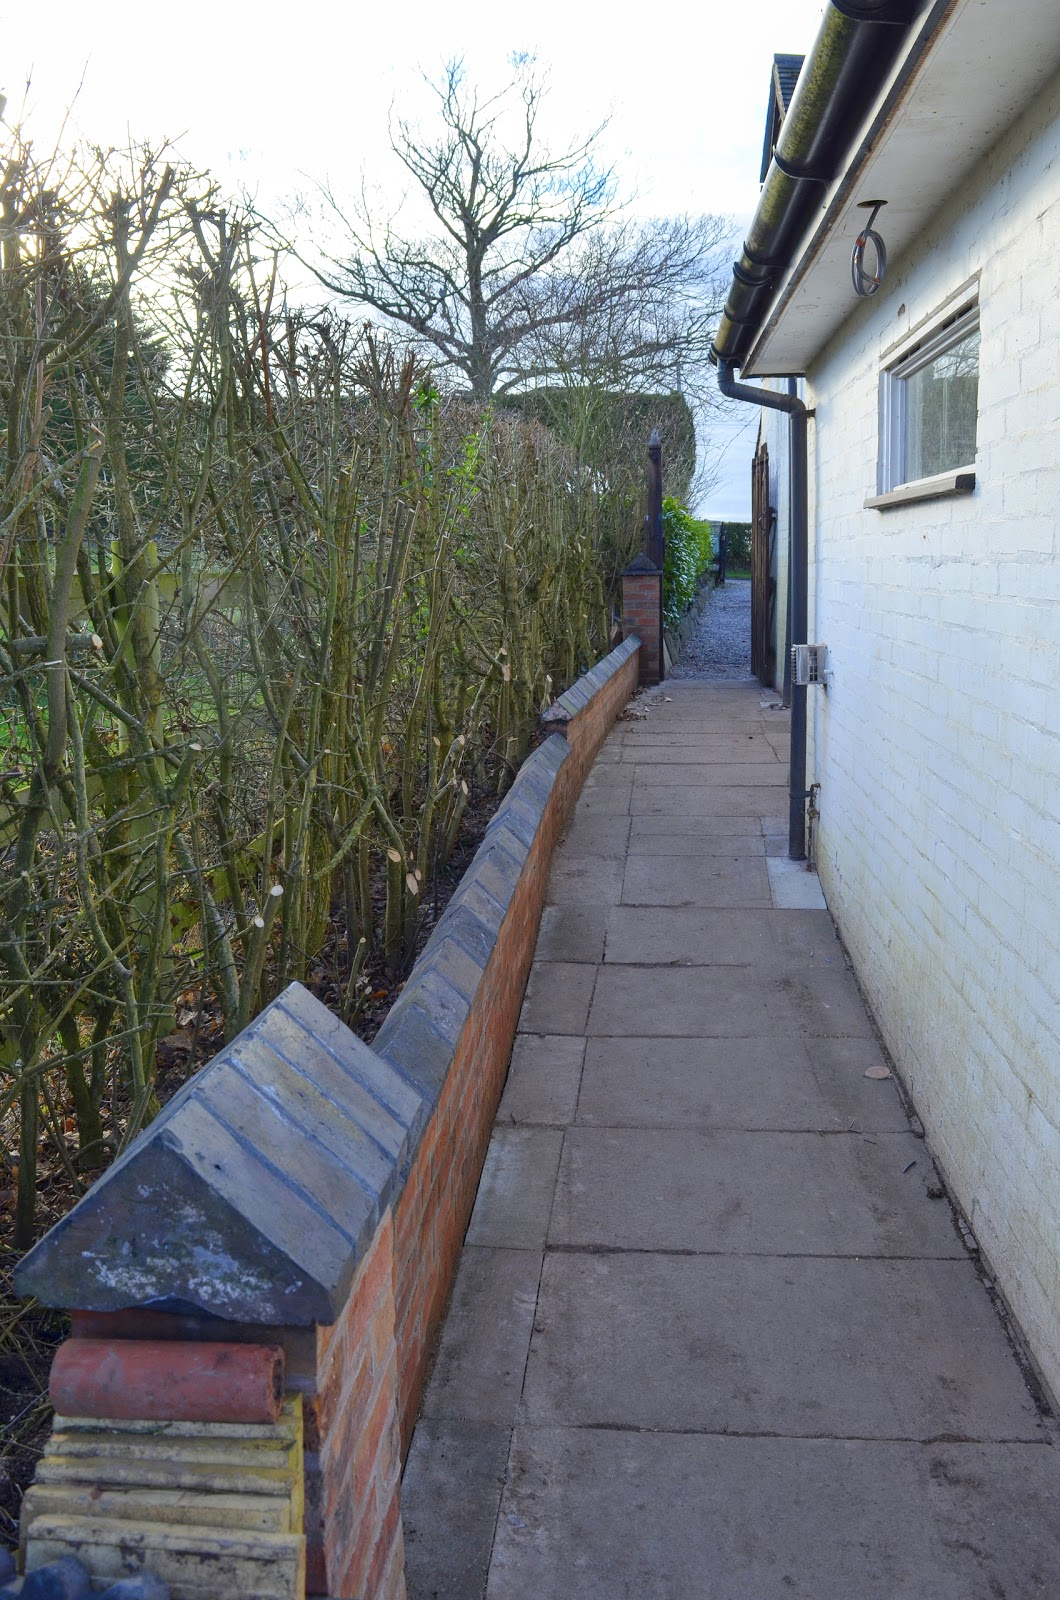 Chrisu0027s Wall Behind The Garage With Its Row Of Little Black Witchesu0027 Hats  Is Looking So Good, We Trimmed The Hedge Behind It Sloping It Back To Allow  In ...